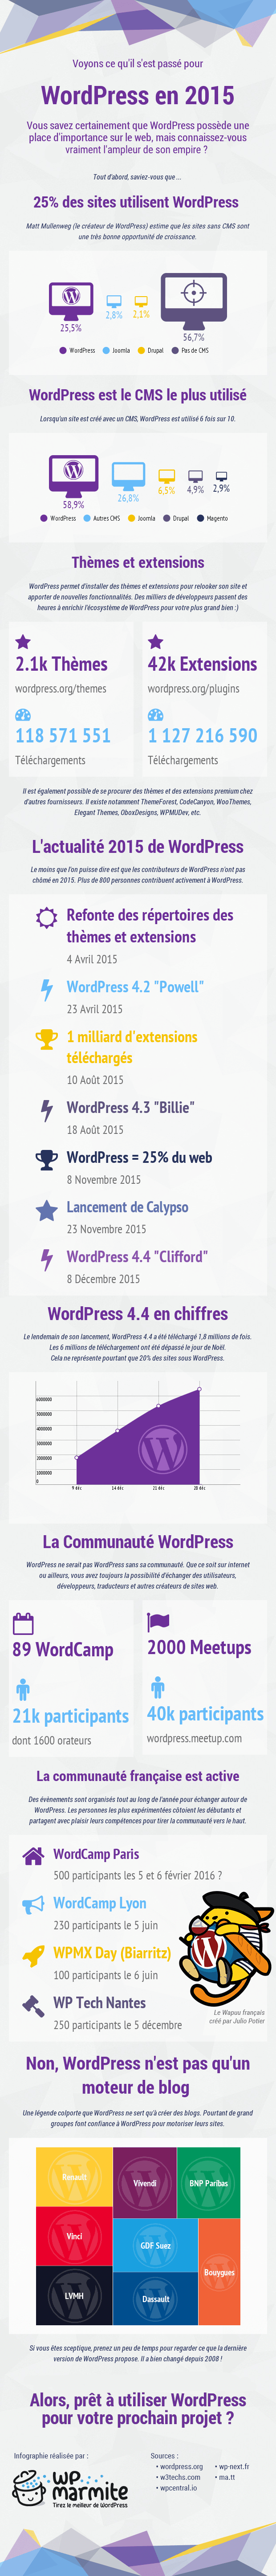 Infographie-WordPress-2015